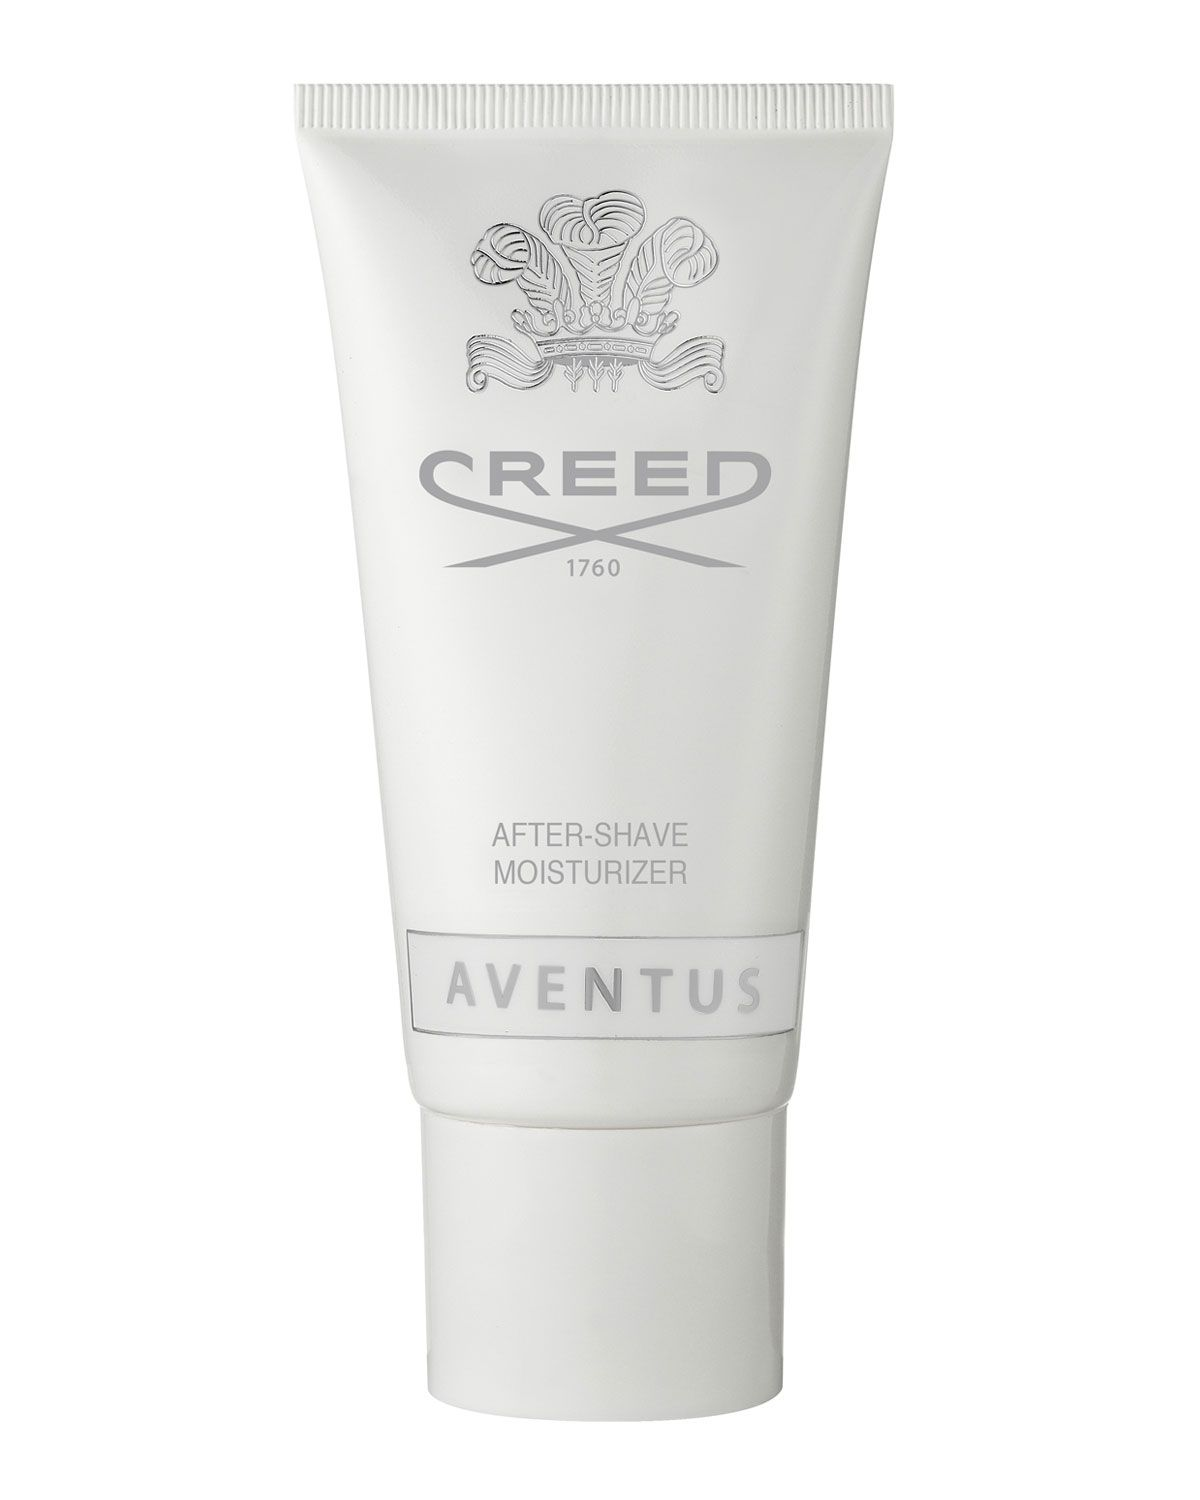 Aventus After-Shave Balm - CREED